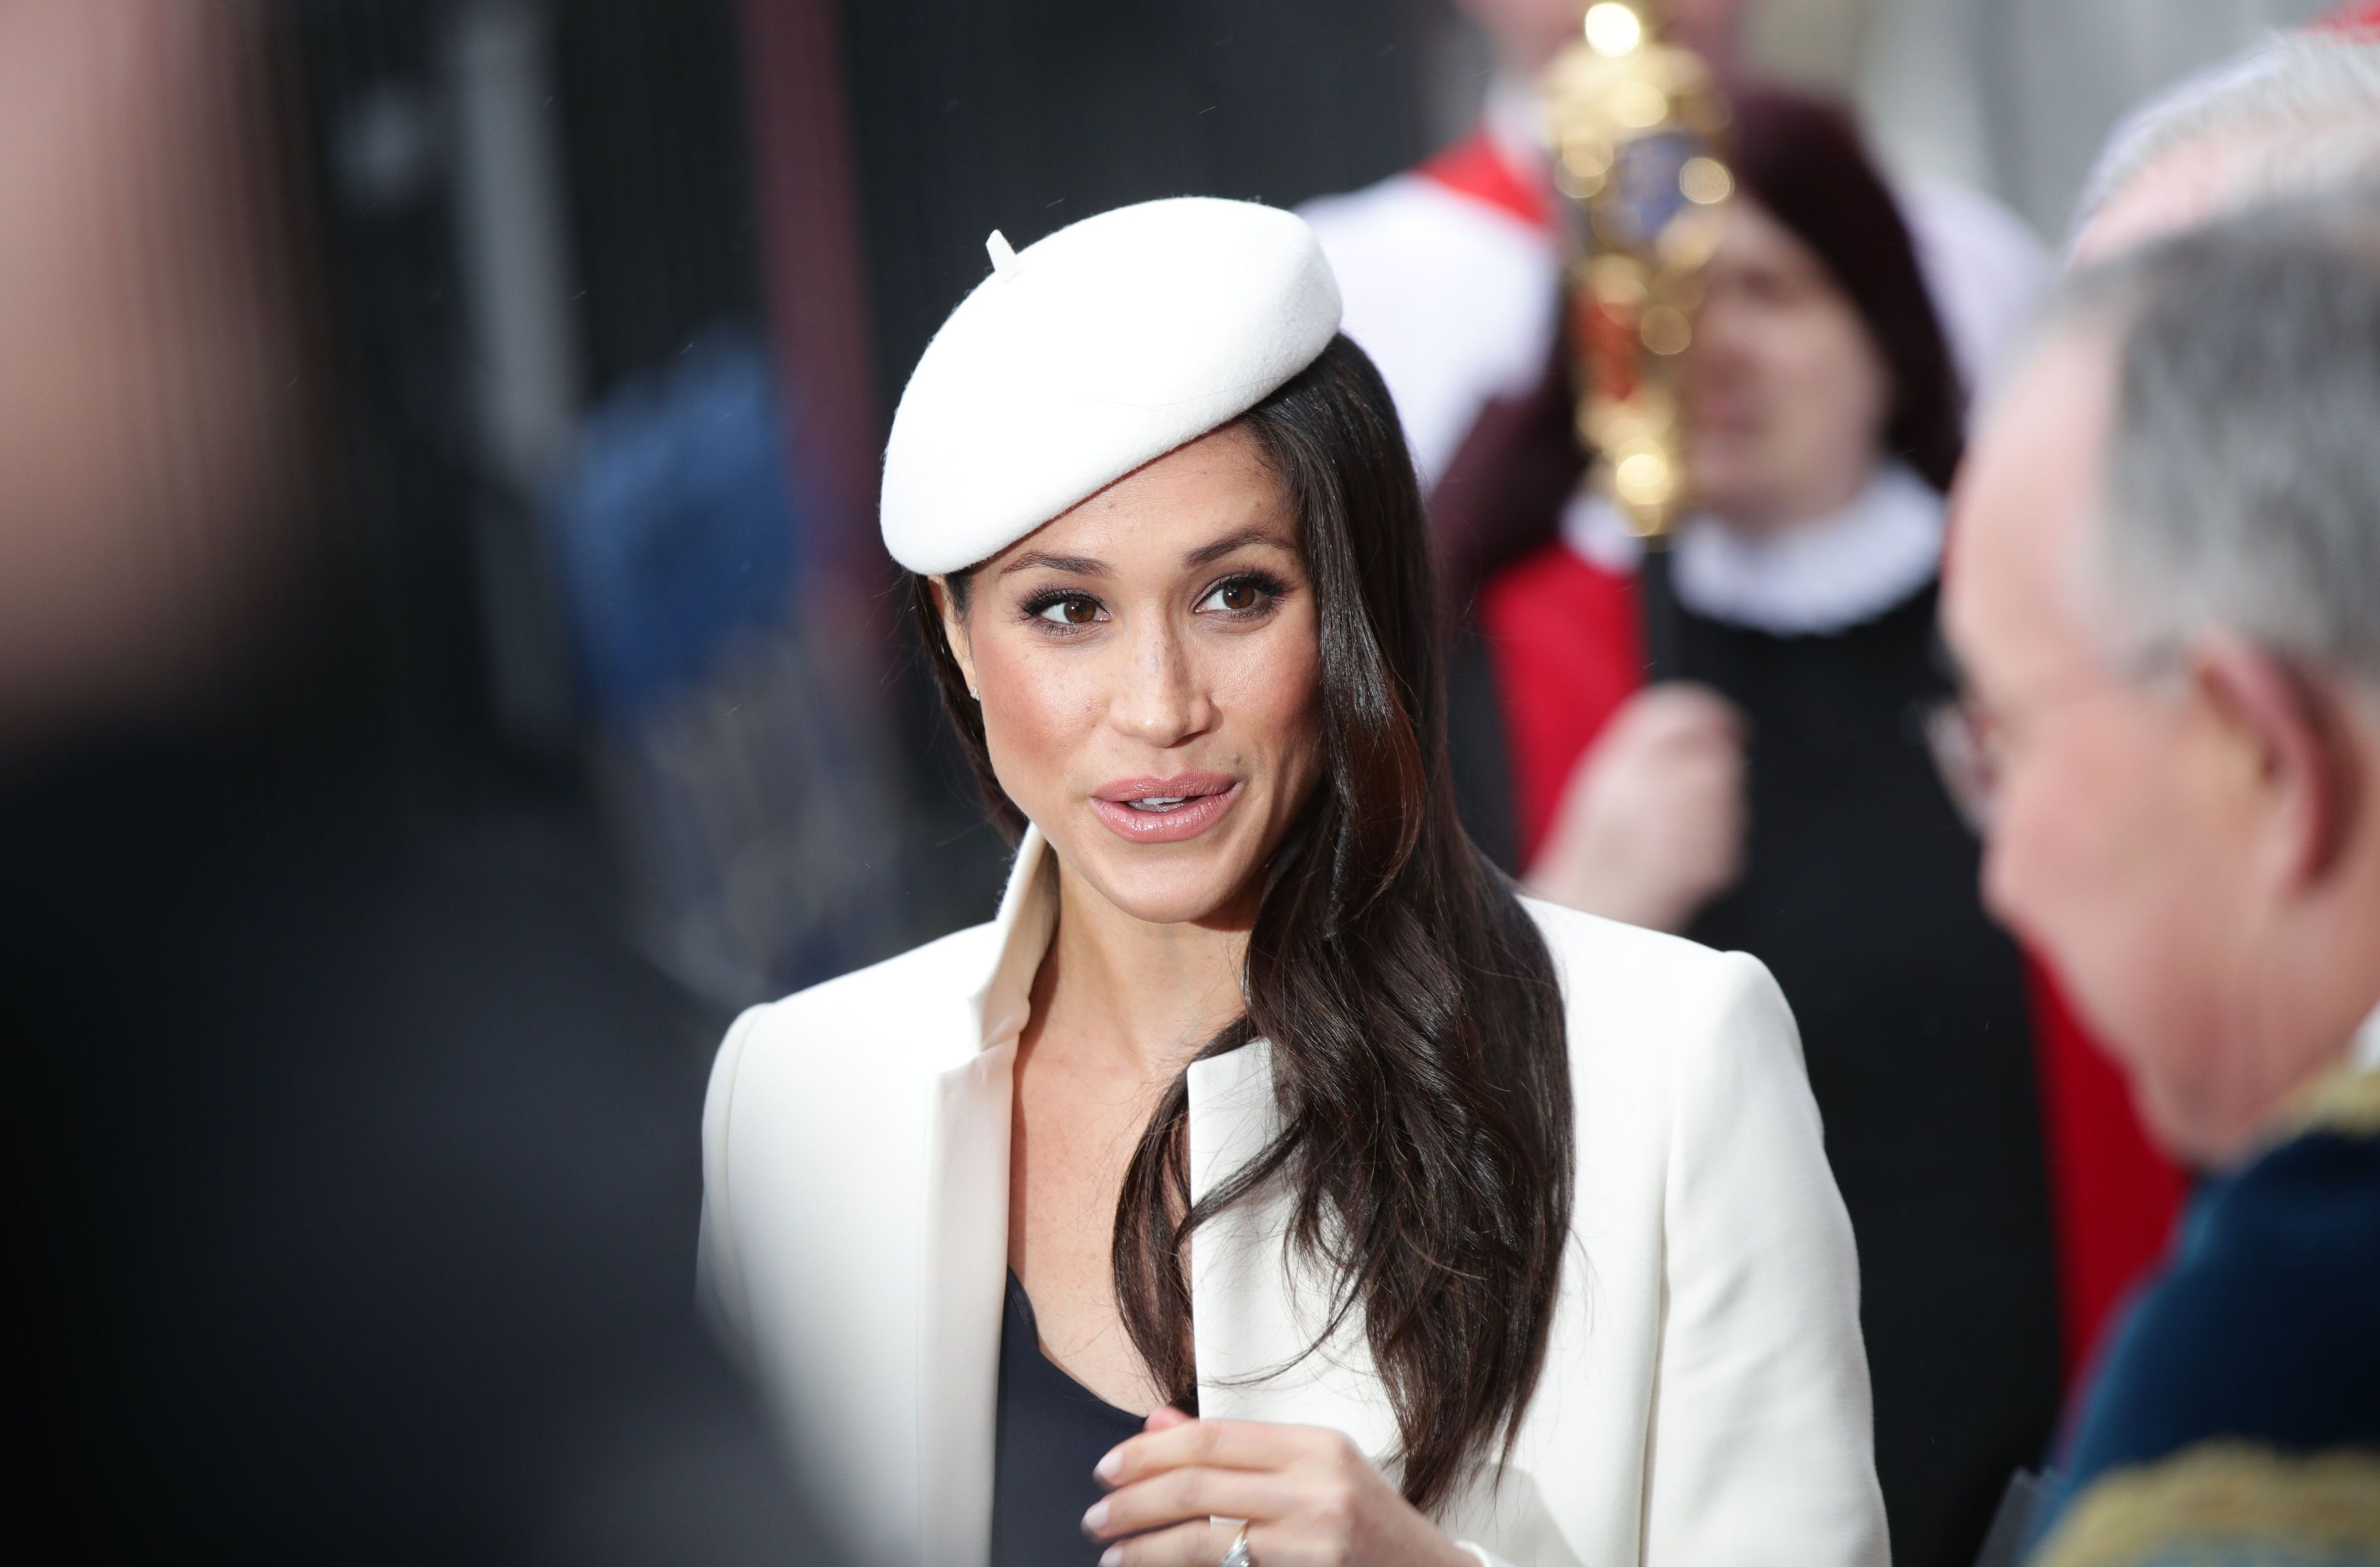 Meghan Markle leaves the Commonwealth Service at Westminster Abbey, London. (Photo by Yui Mok/PA Images via Getty Images)